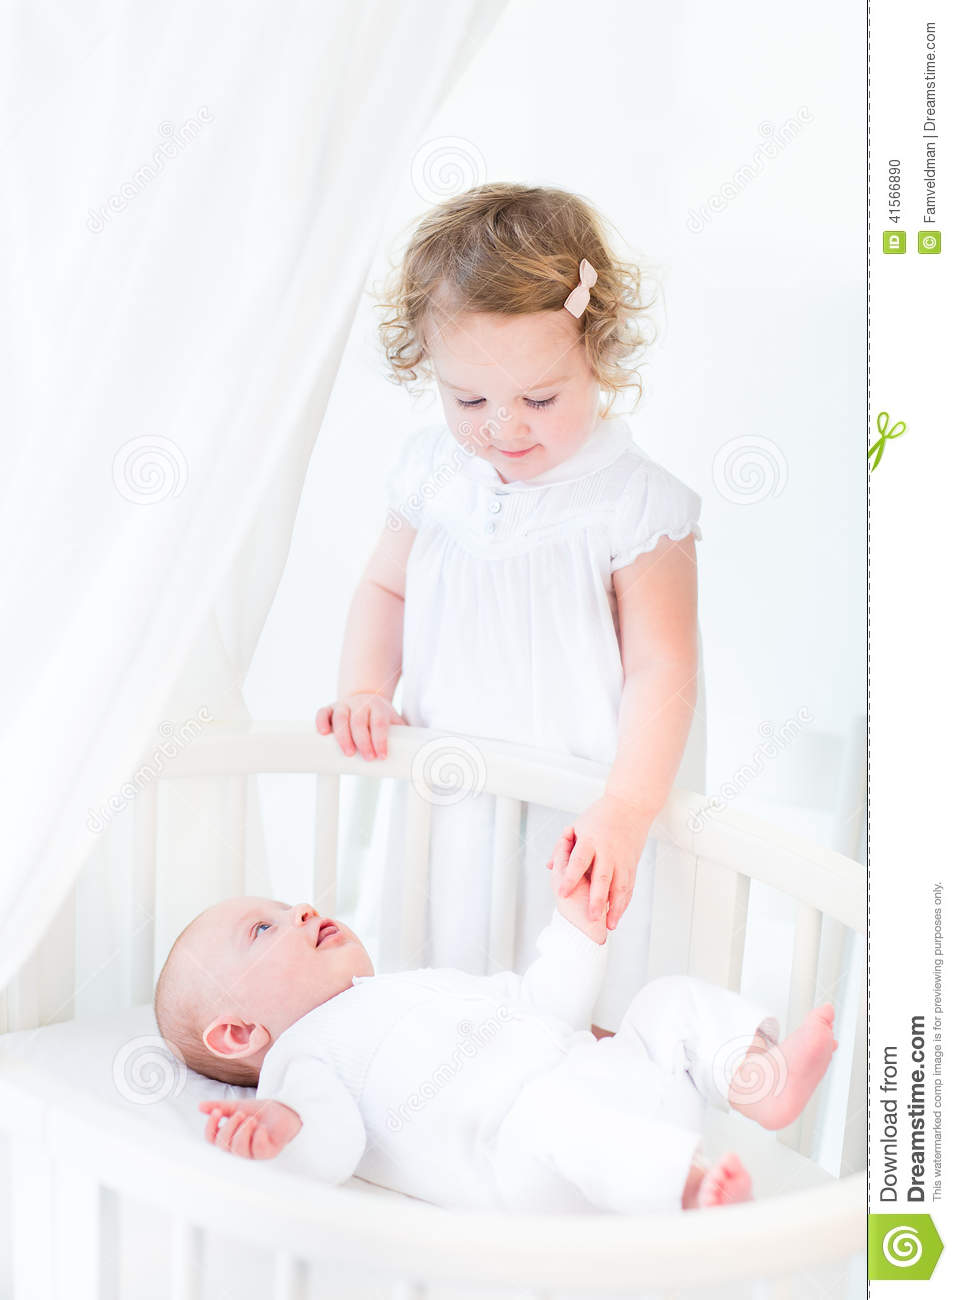 Toddler Girl Holding Hands With Newborn Brother Stock ...